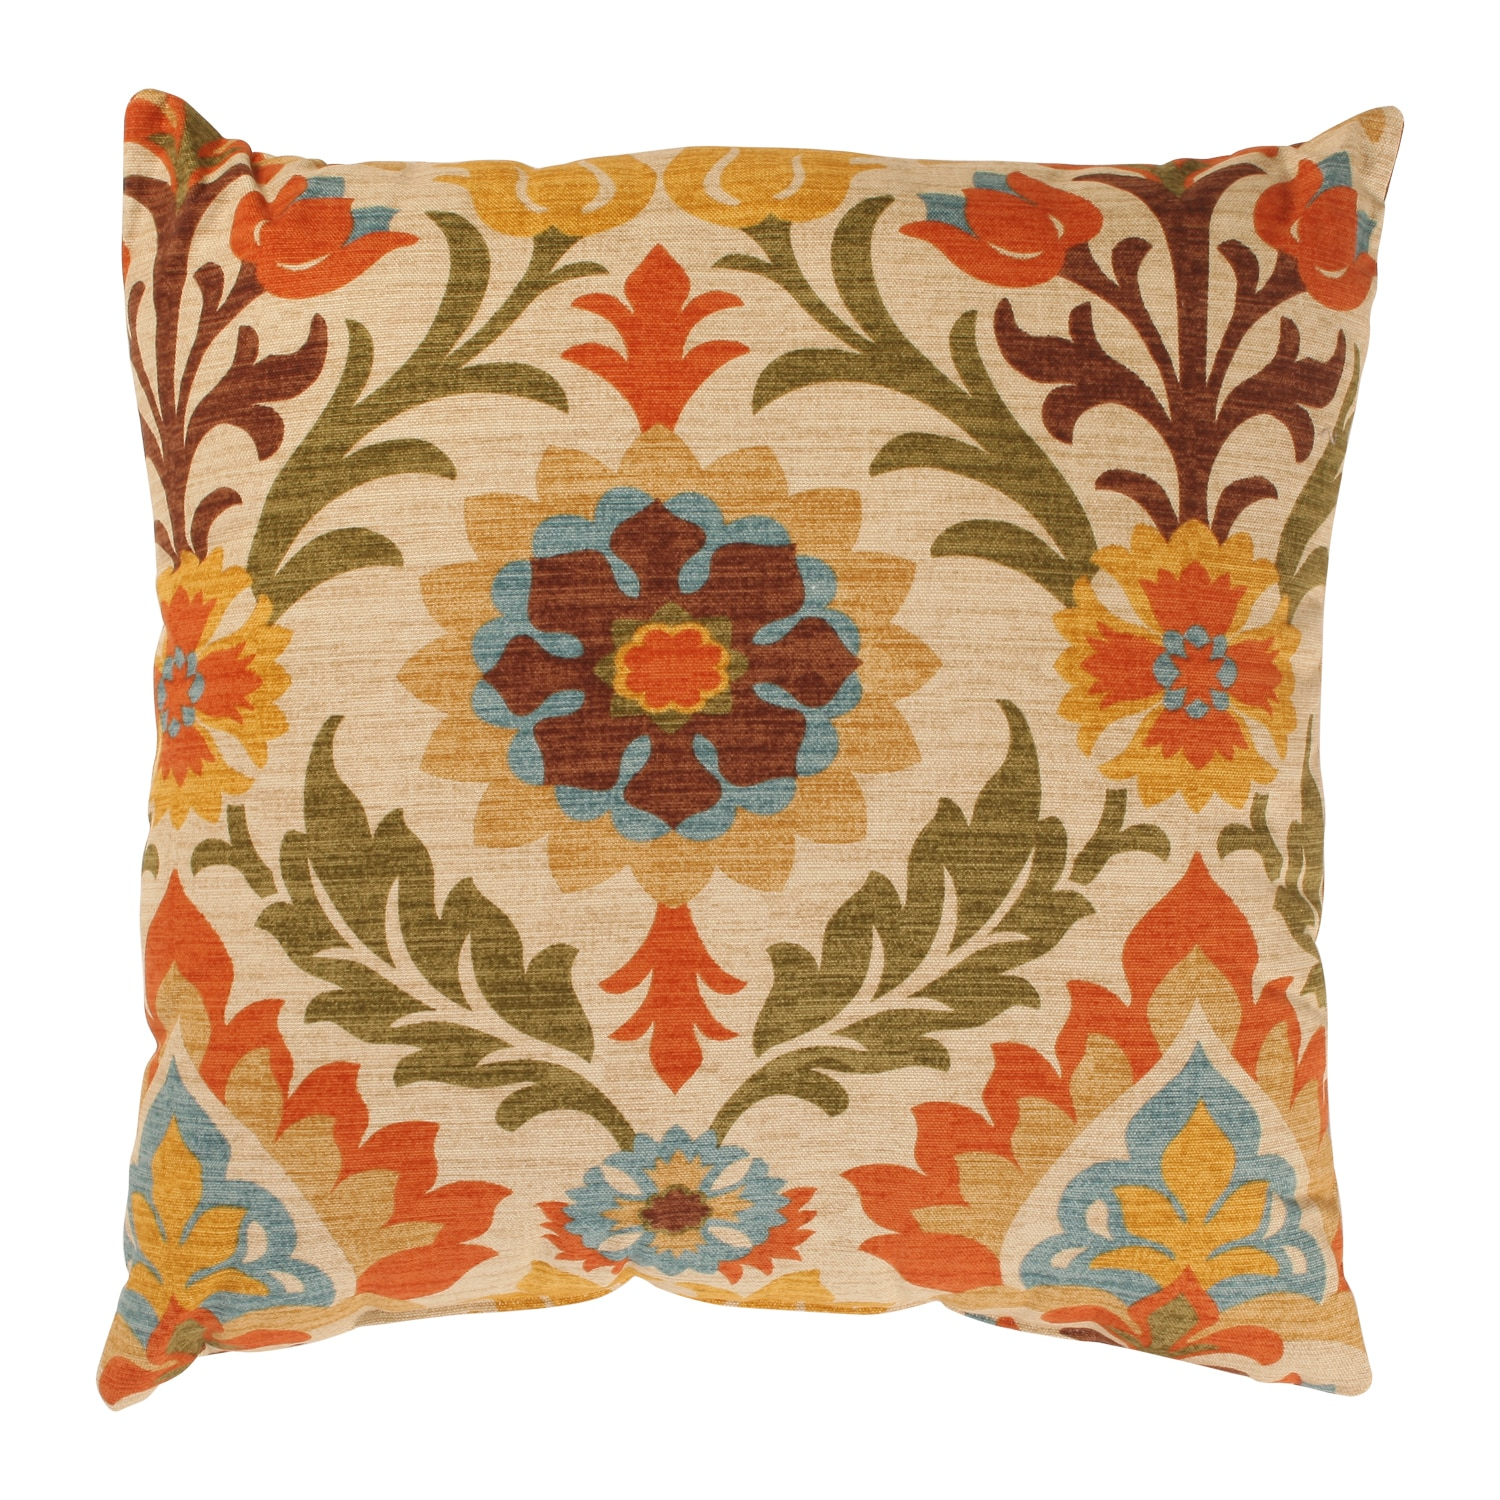 Orange Floral Throw Pillows Shop The Best Deals for Oct 2017